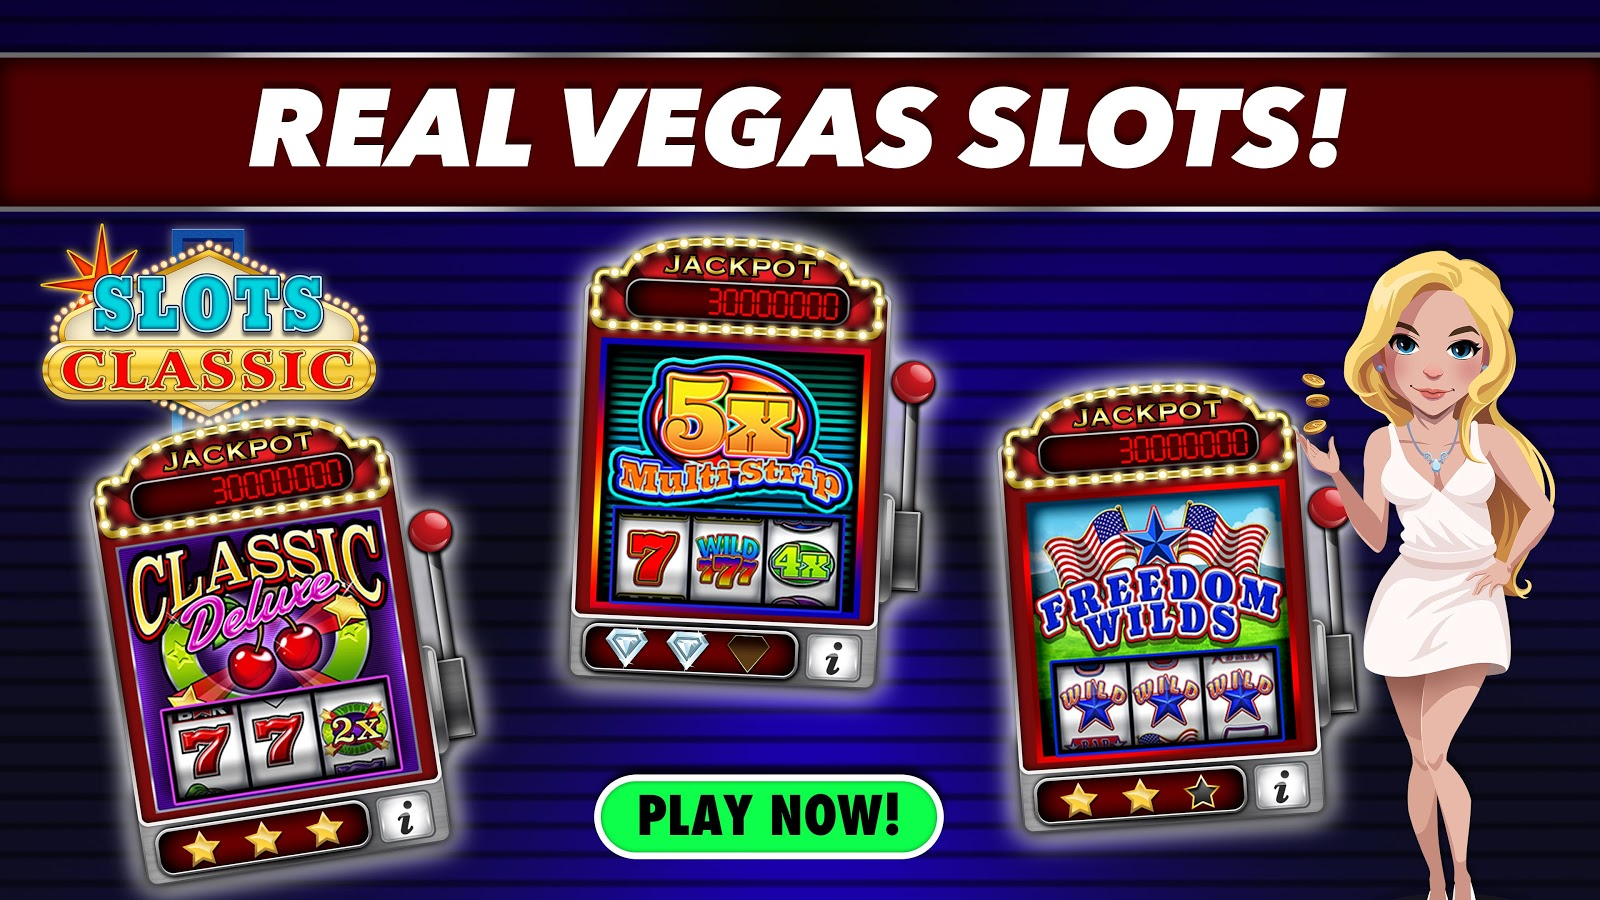 Online slots with FREE SPINS - Play online slot machine games at Slotozilla! - 4